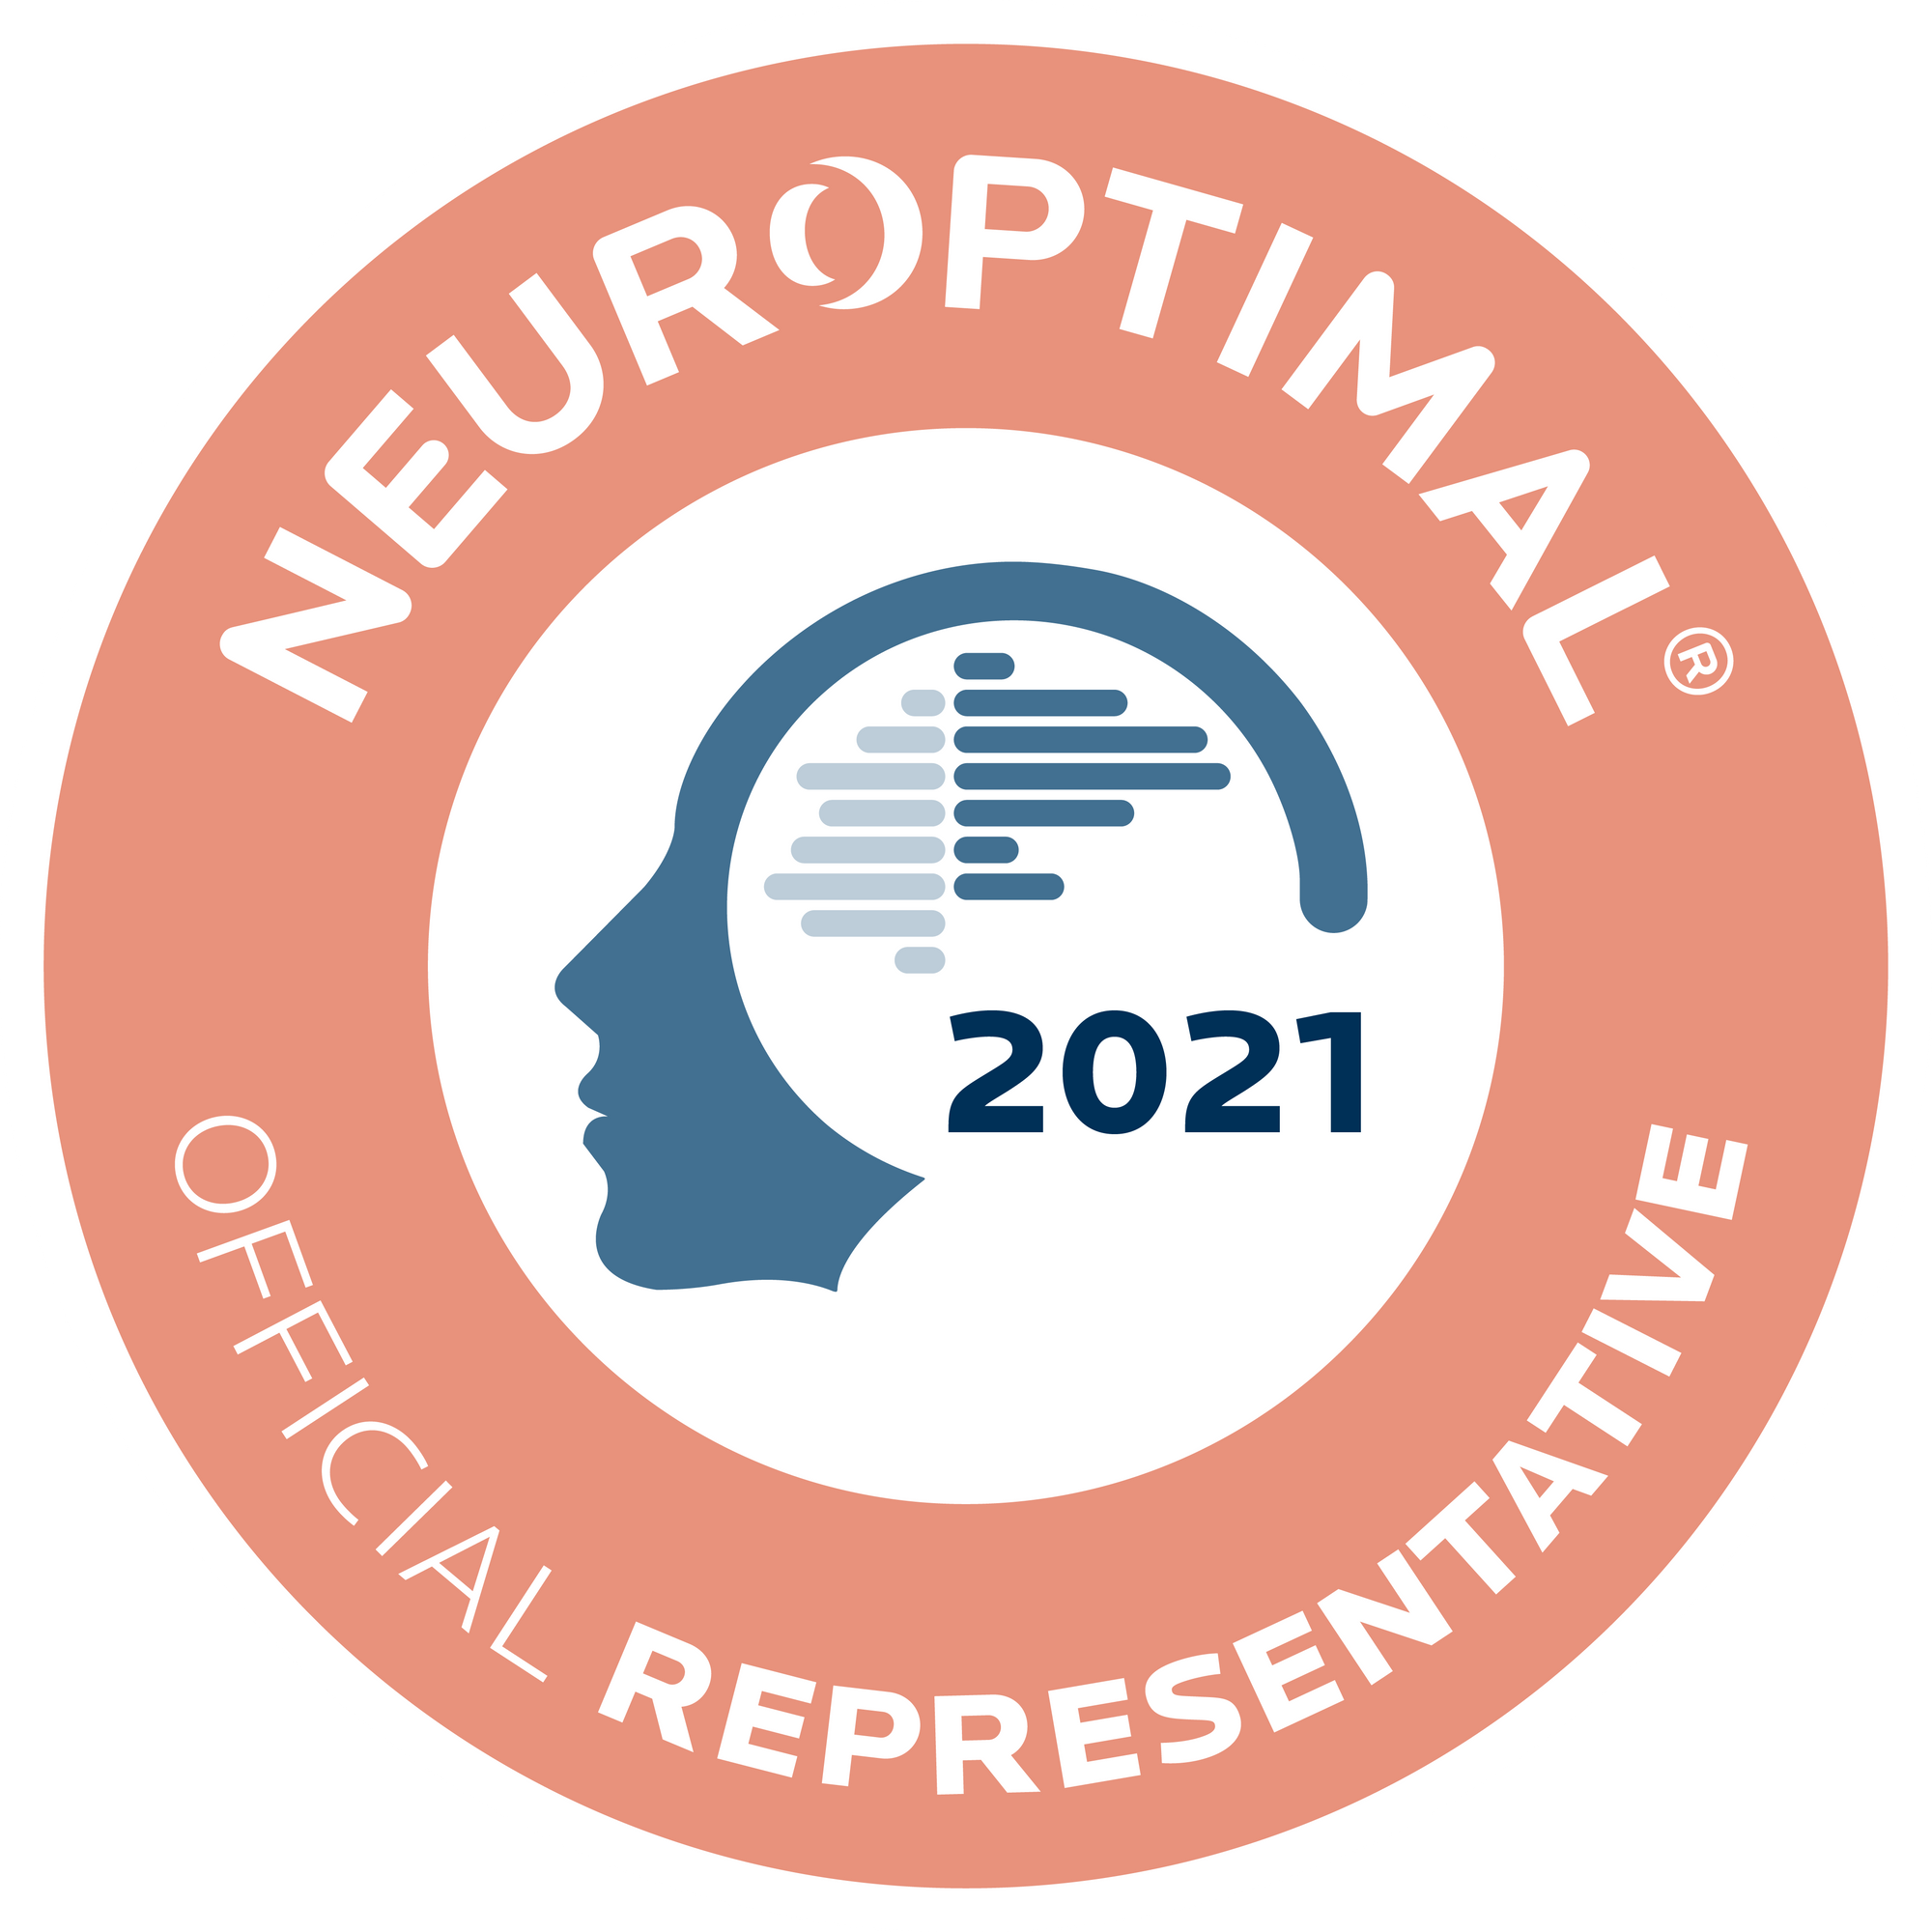 Official badge for being an Official Representative for Neuroptimal.